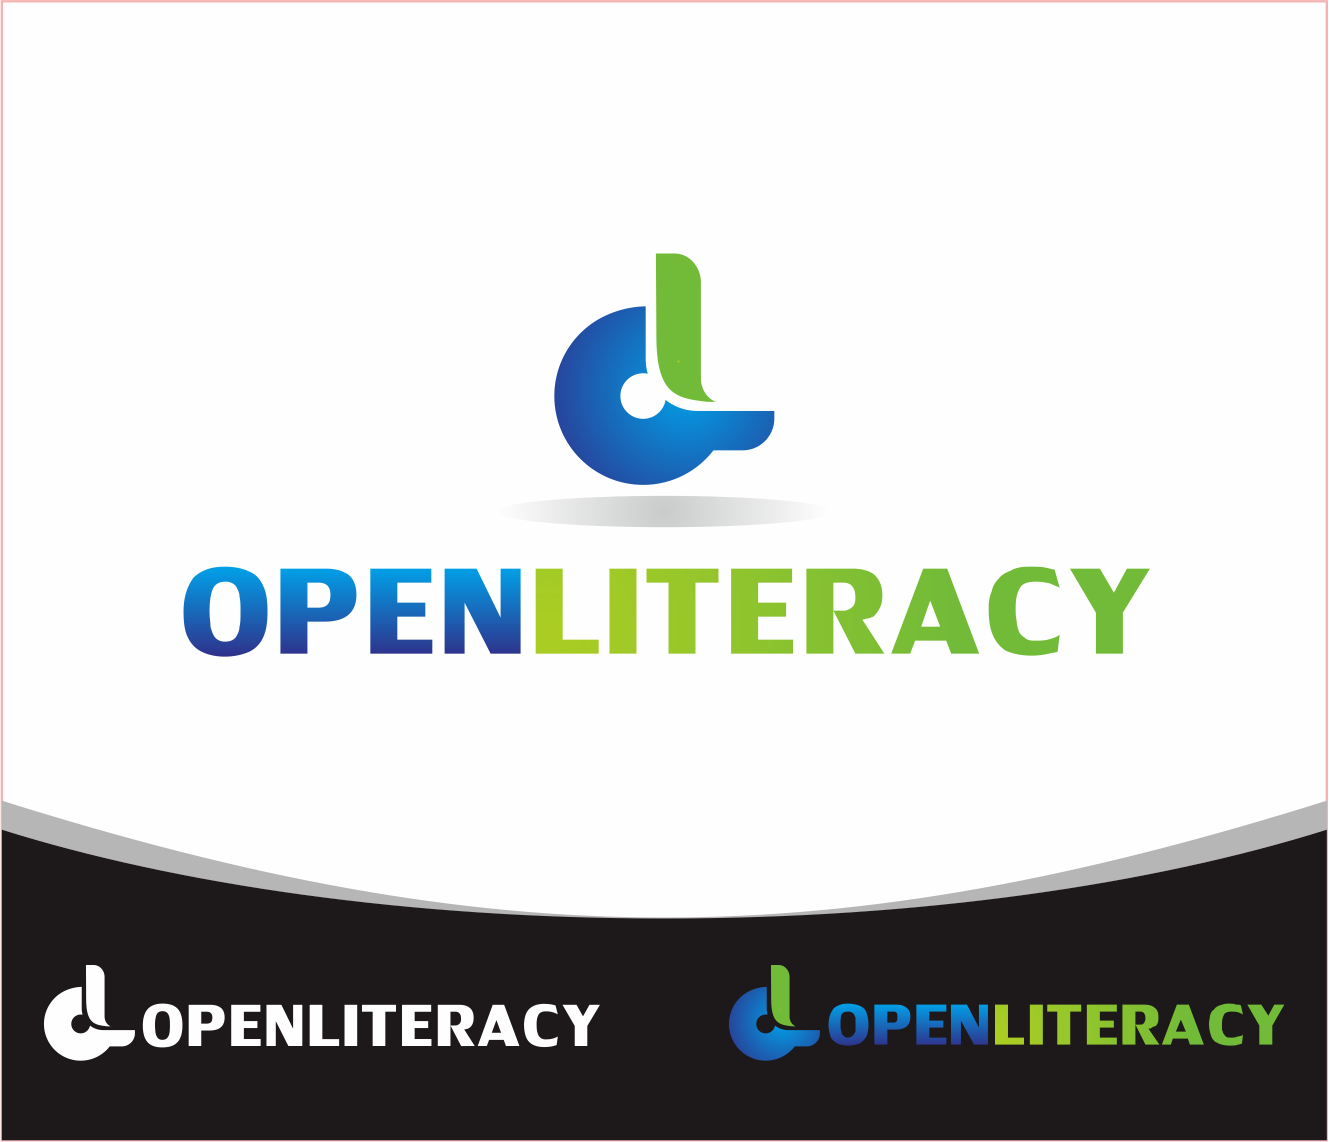 Logo Design by Armada Jamaluddin - Entry No. 105 in the Logo Design Contest Inspiring Logo Design for OpenLiteracy.